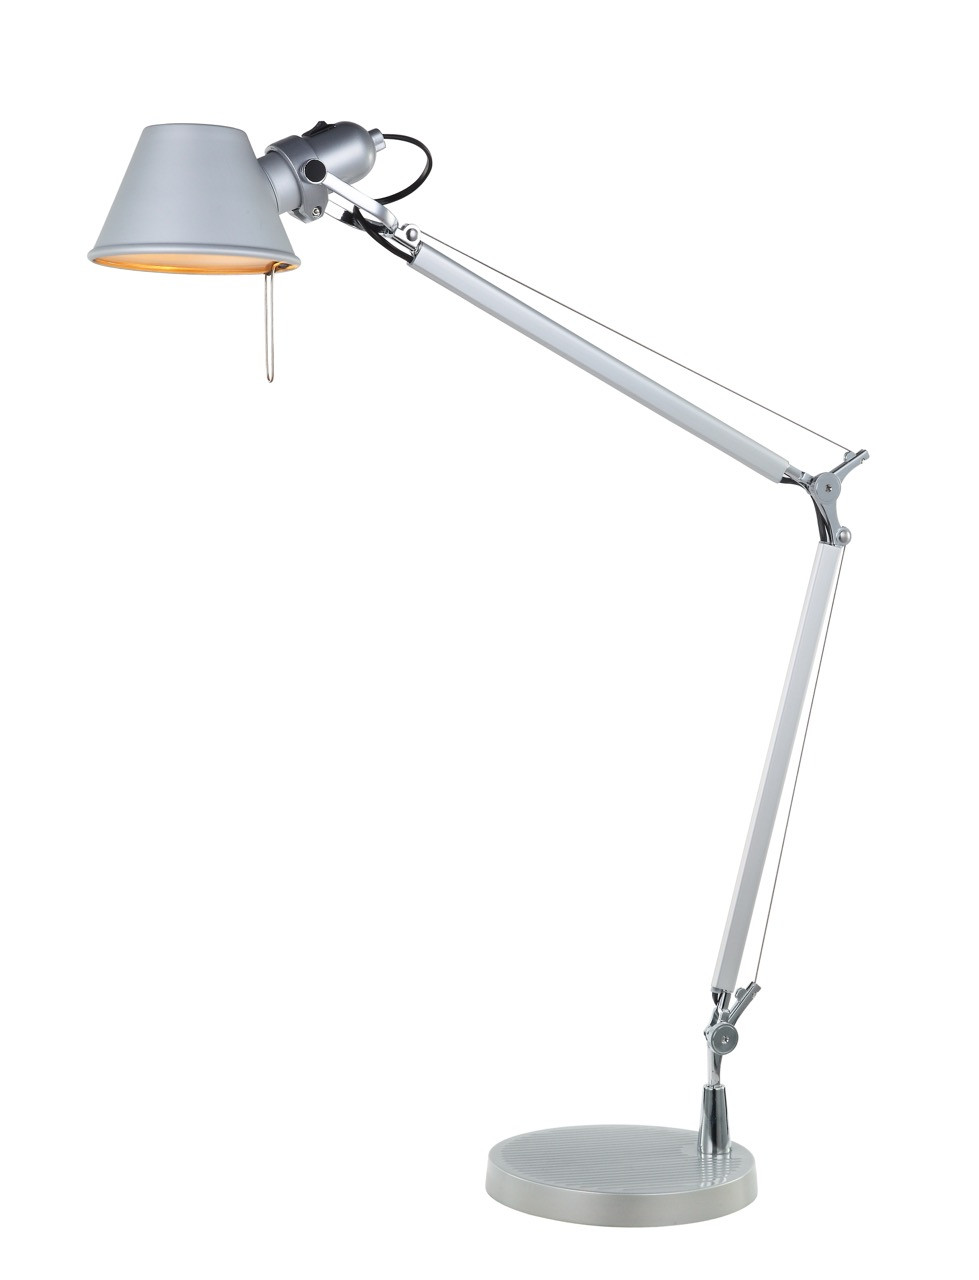 Lampara De Escritorio Led Contemporáneo Prar Lámpara De Mesa Tipo Metalarte Con Articulaciones Of Lampara De Escritorio Led Maravilloso Lámpara Portatil Plegable De Escritorio Recargable 22 Led